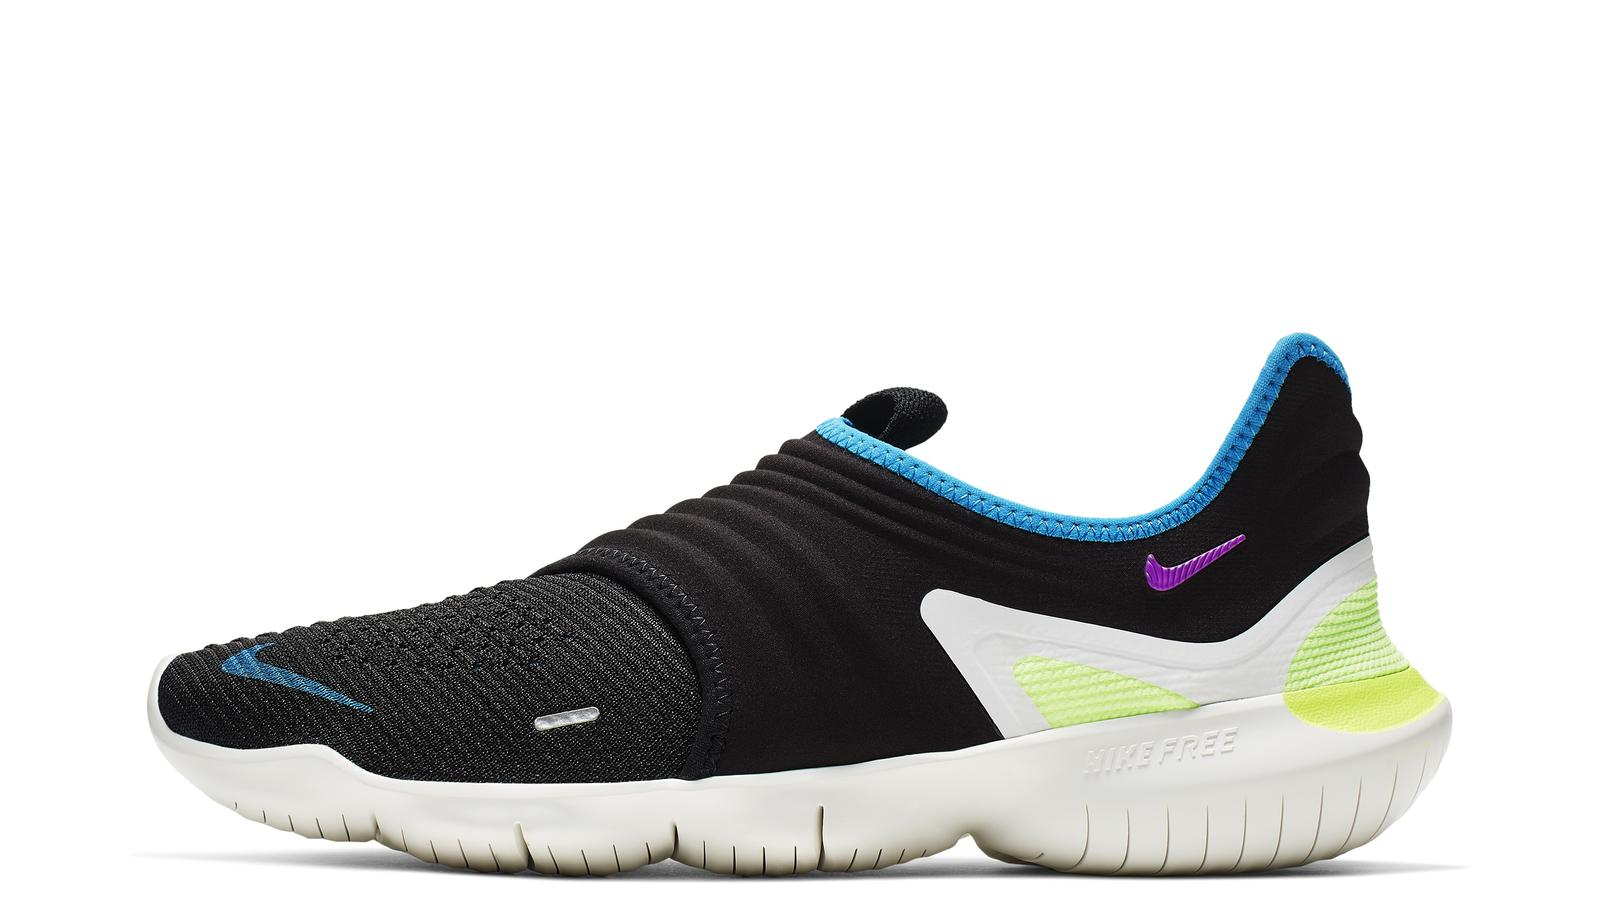 High fashion Nike Free 3.0 v2 Running kM 8|ebn1 Shoes For